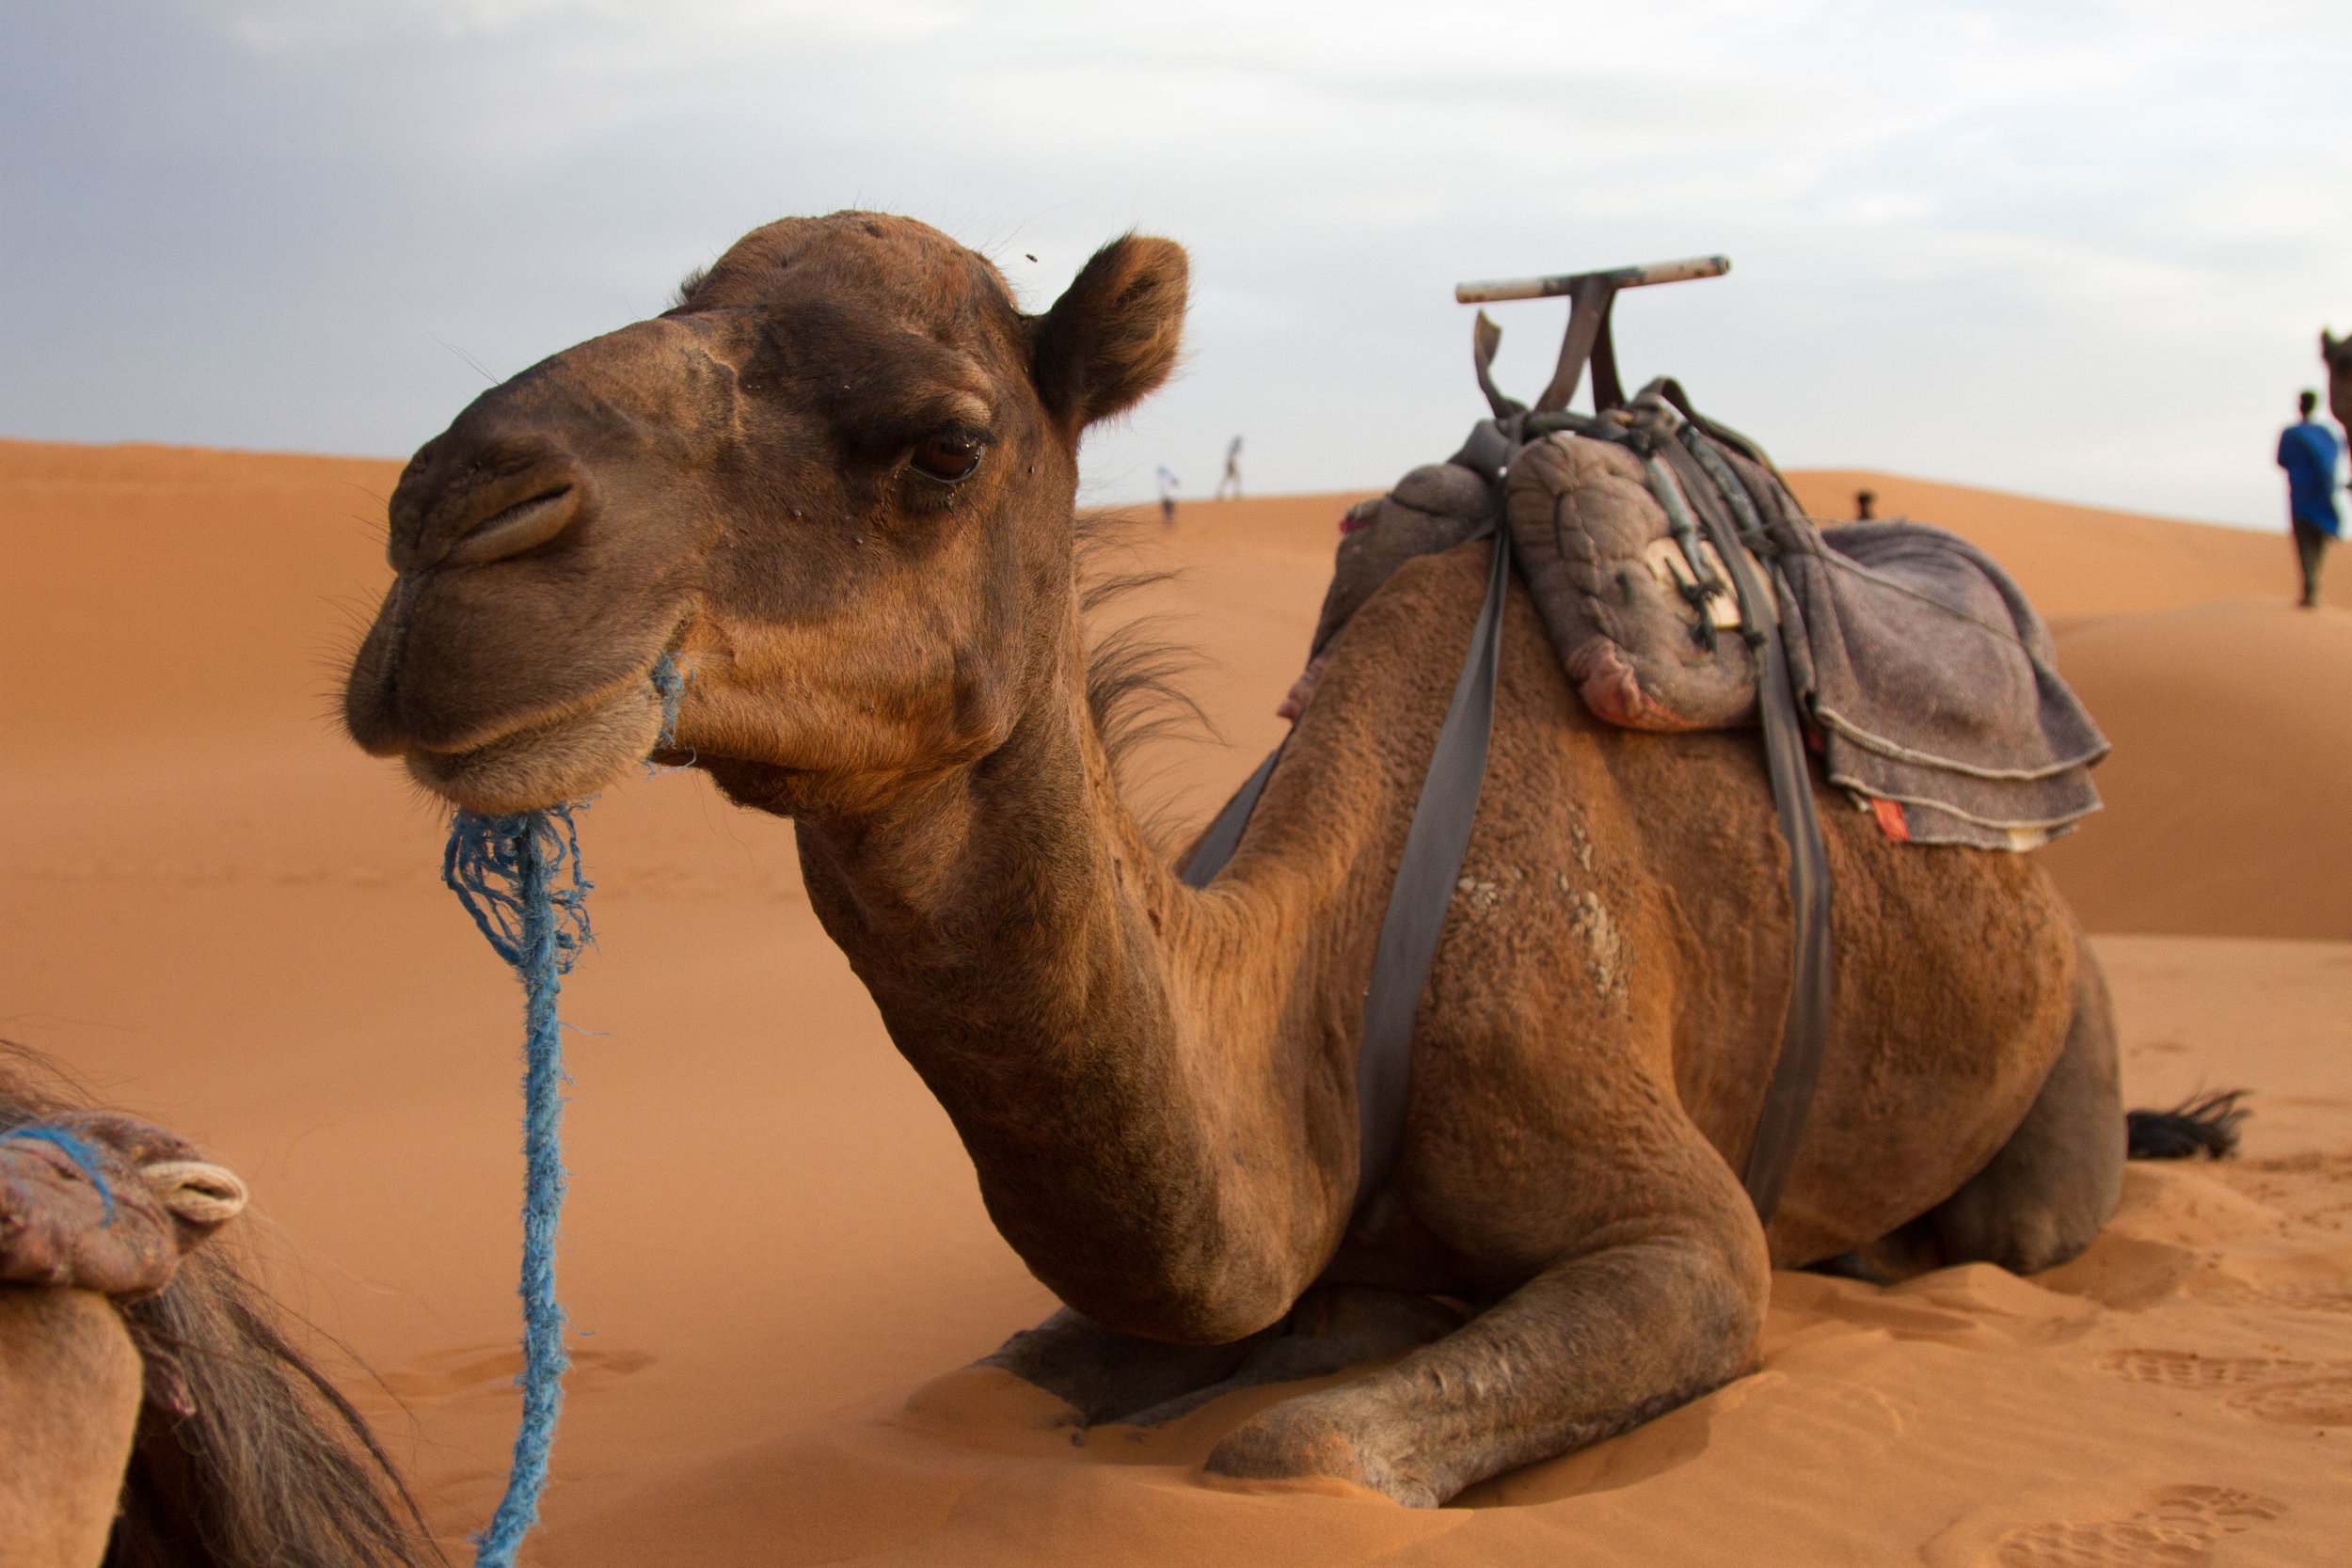 Our friendly camel resting while we climb the dunes to watch the sunset